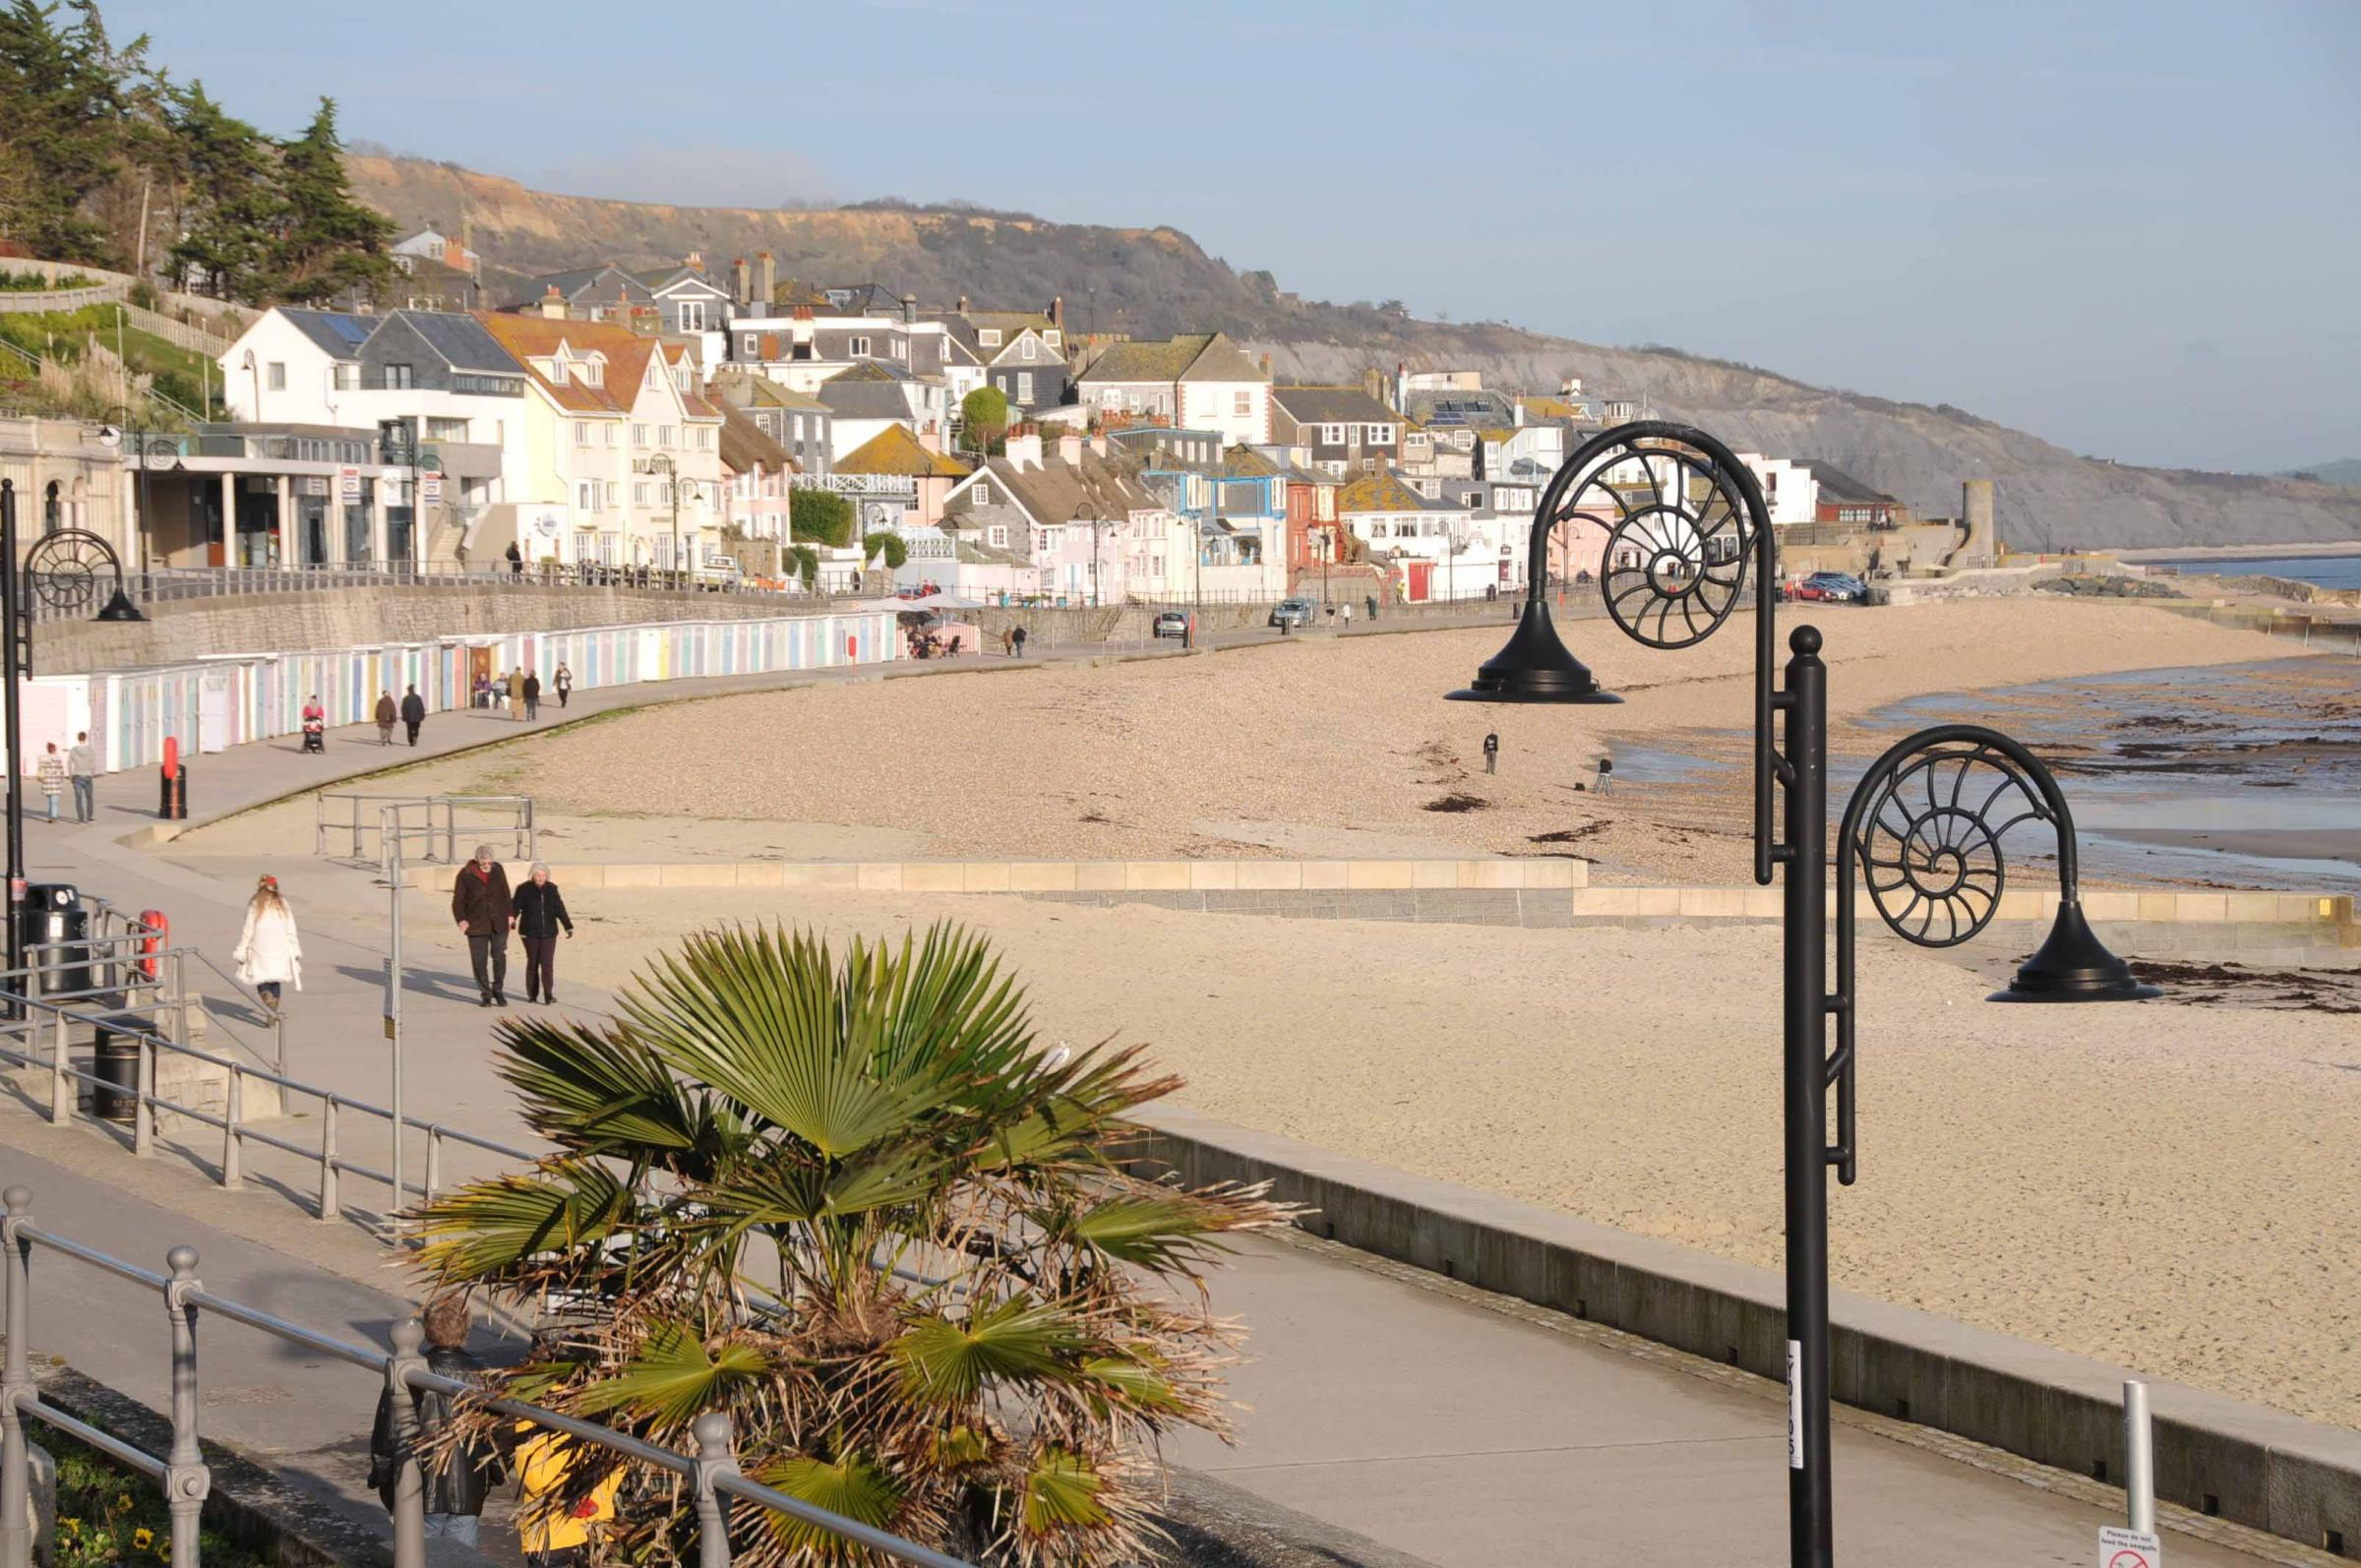 West Dorset beaches to be replenished